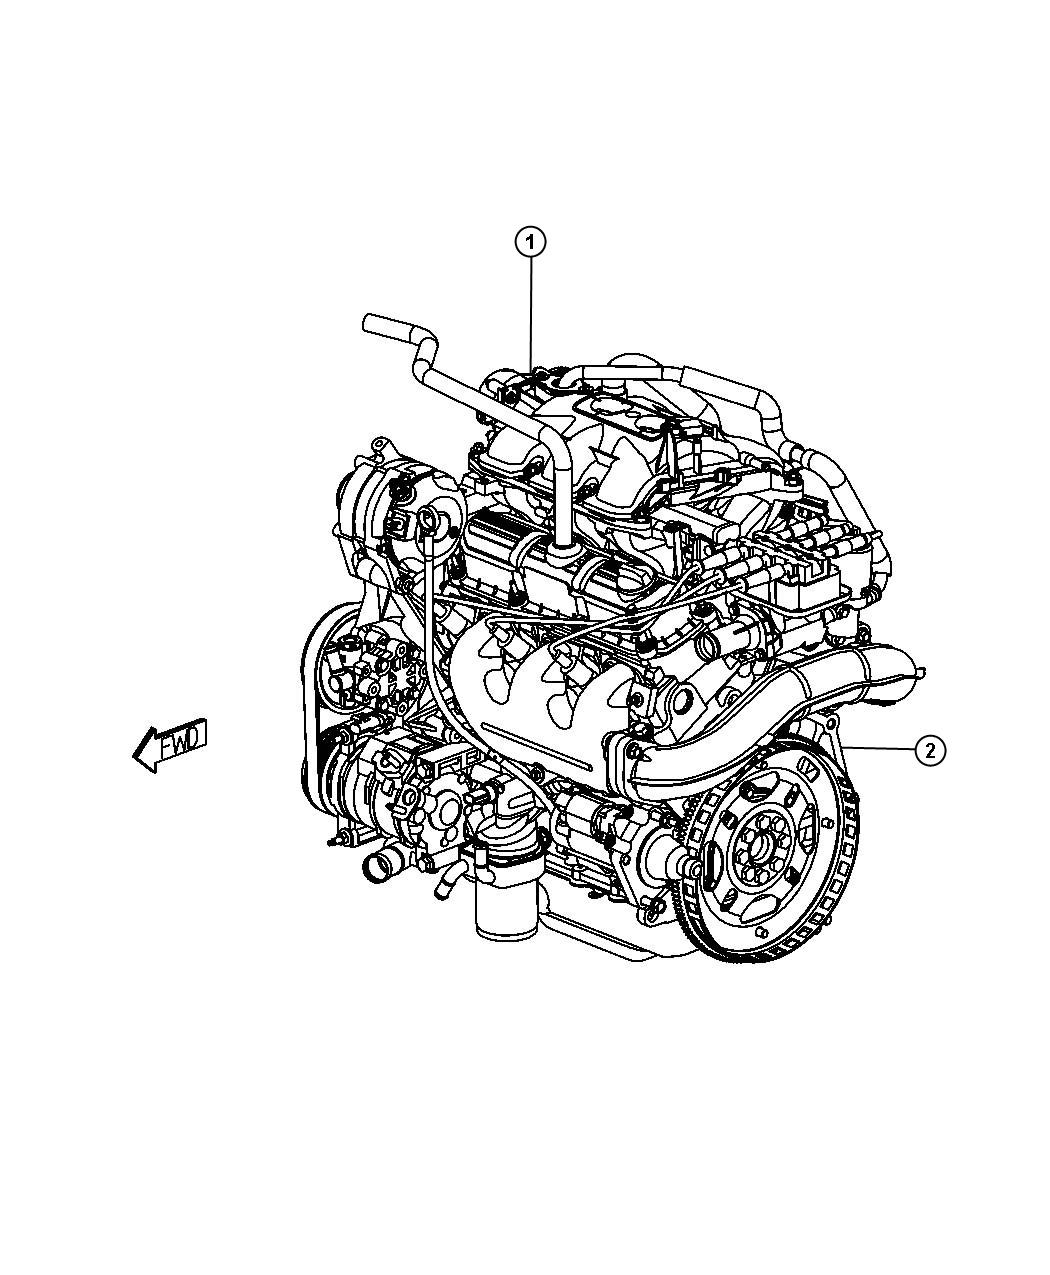 Dodge Grand Caravan Engine Long Block